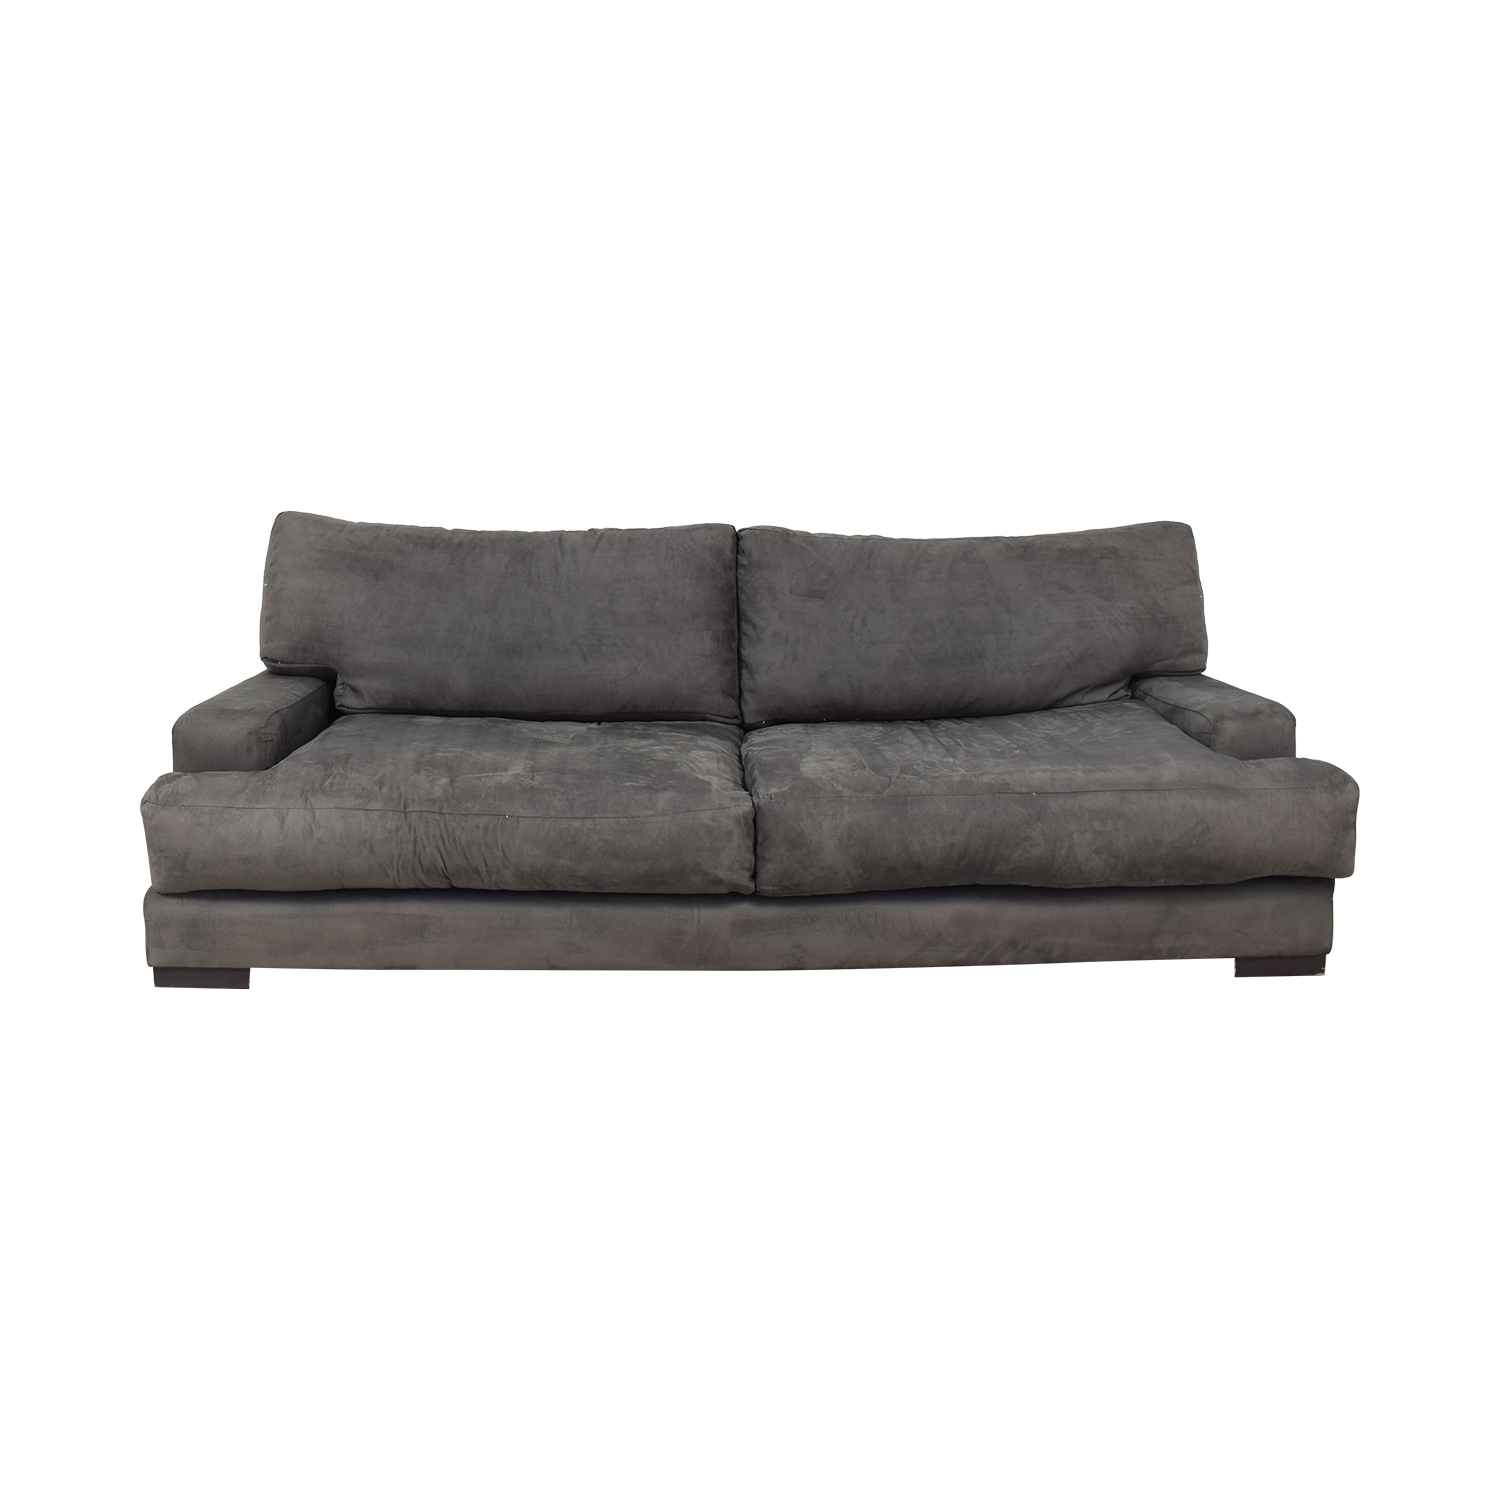 Z Gallerie Z Gallerie Full Sized Sofa on sale